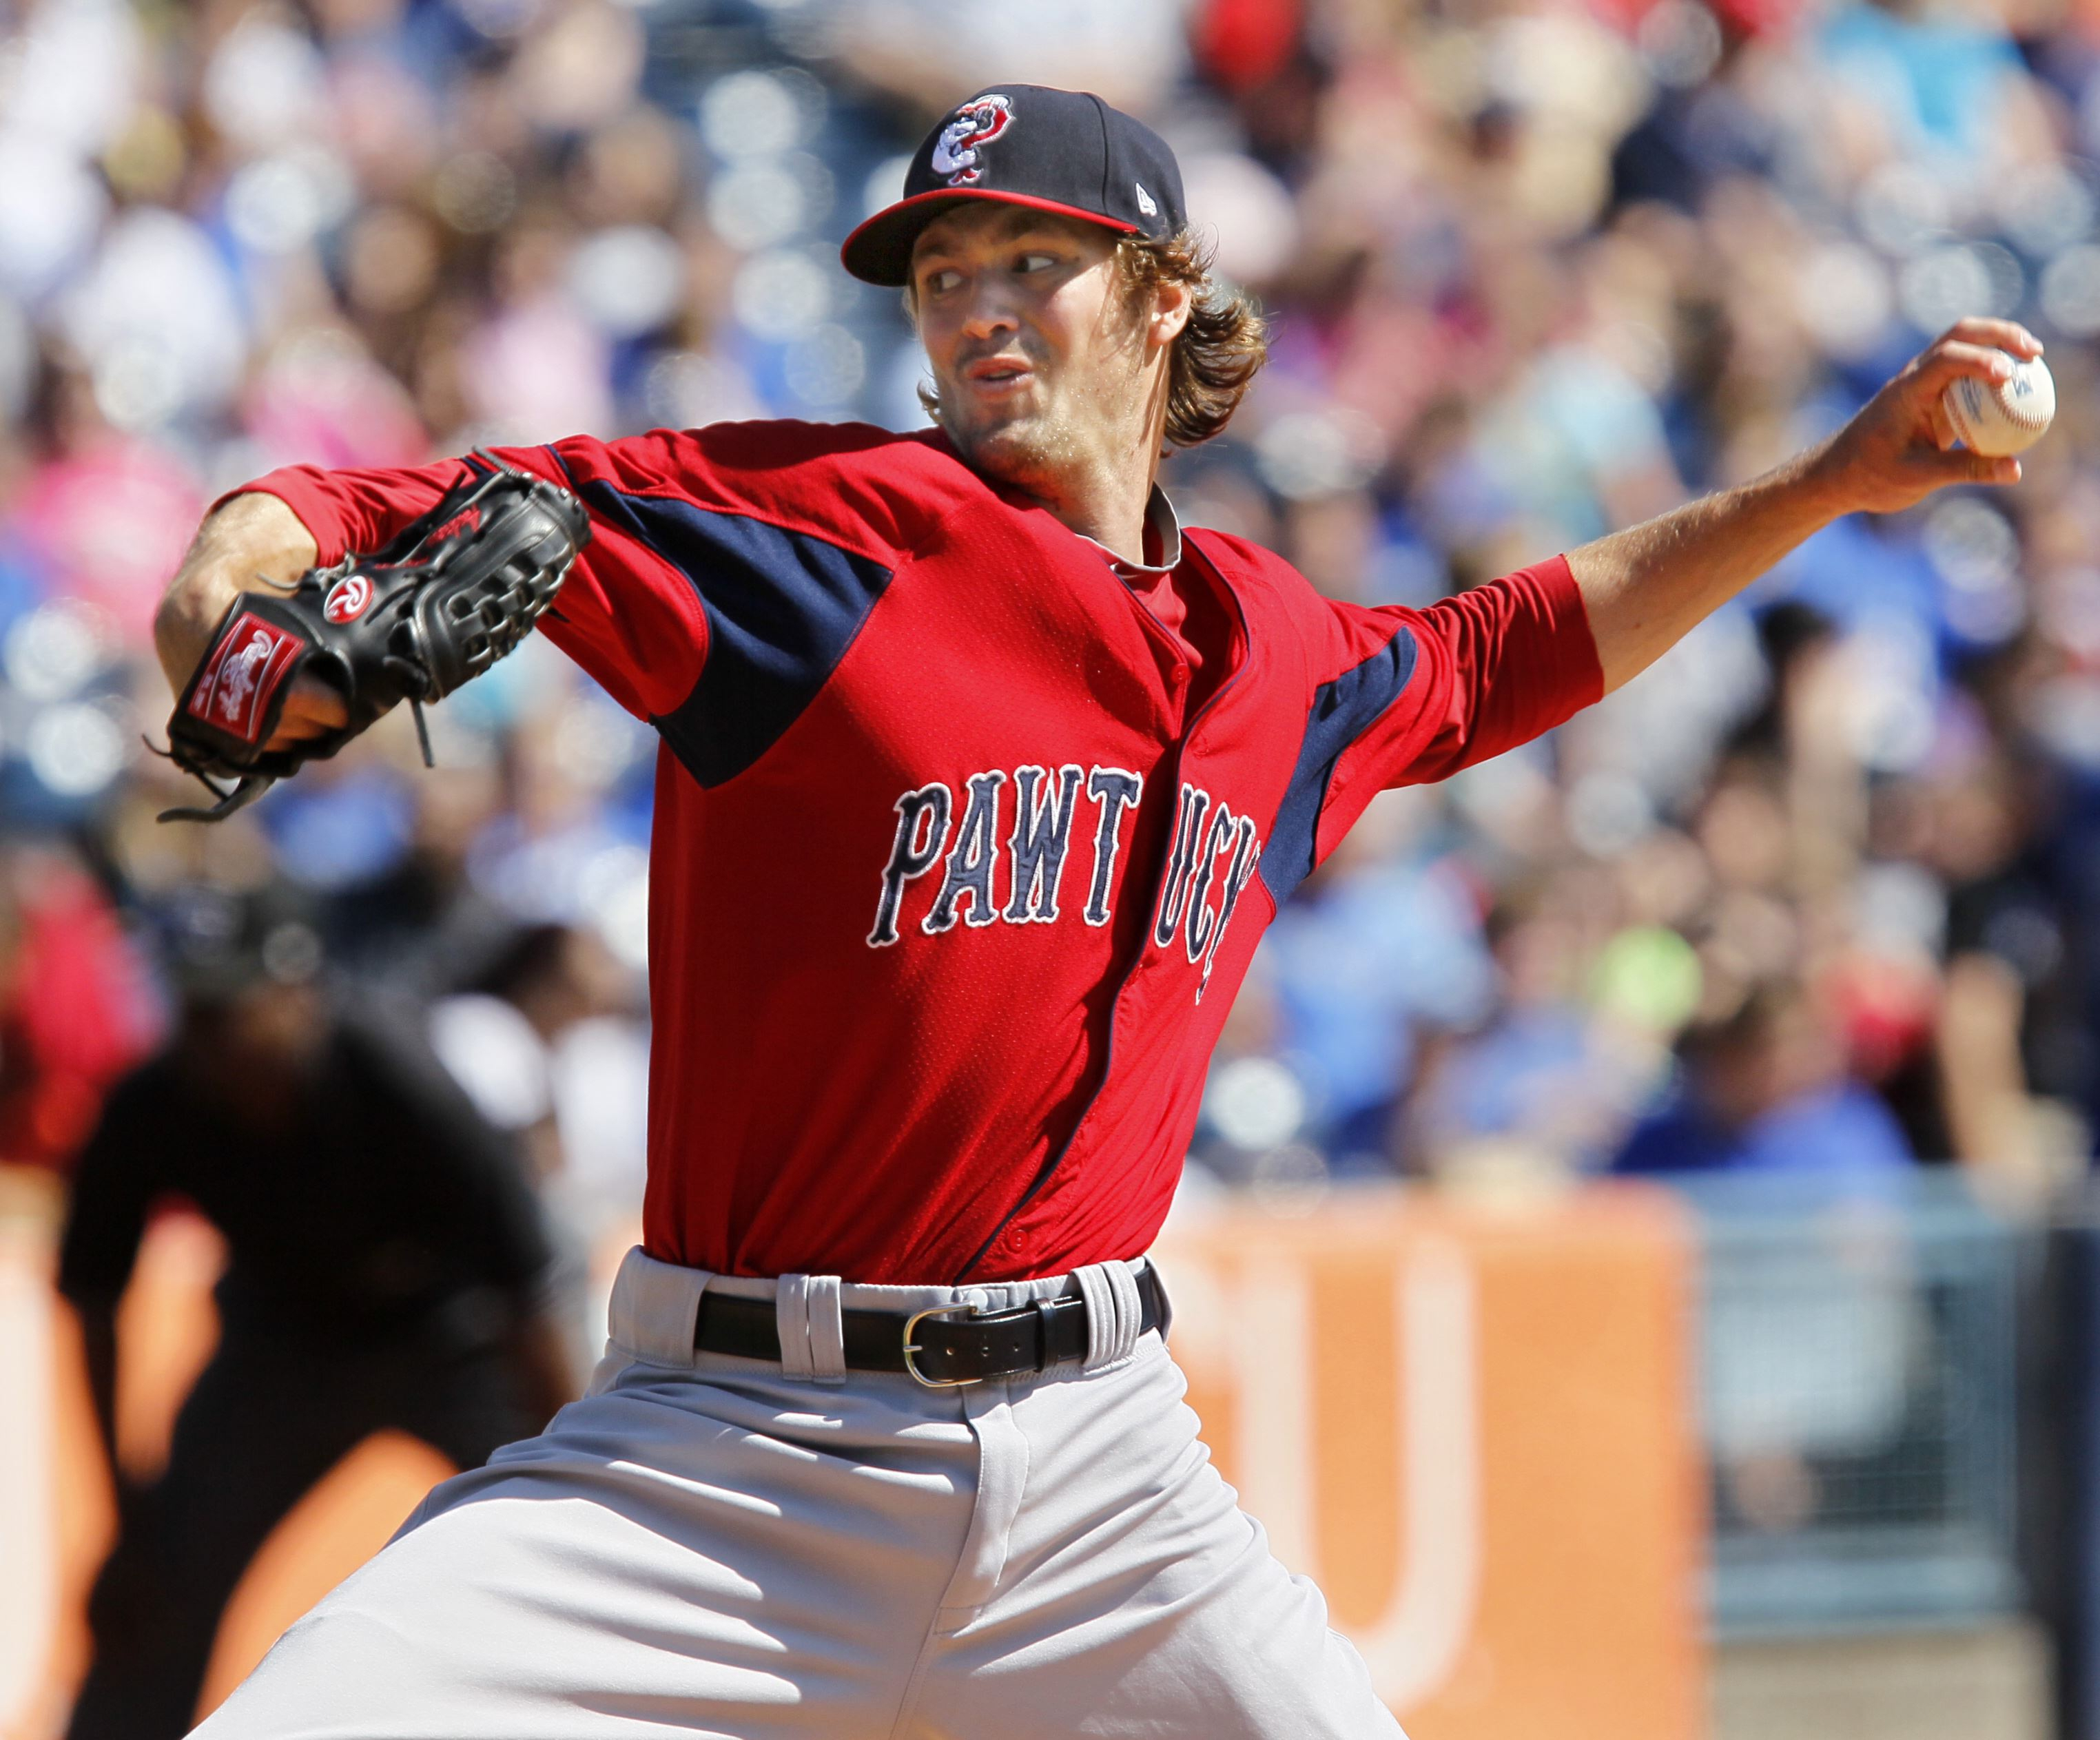 Pawtucket Red Sox Images